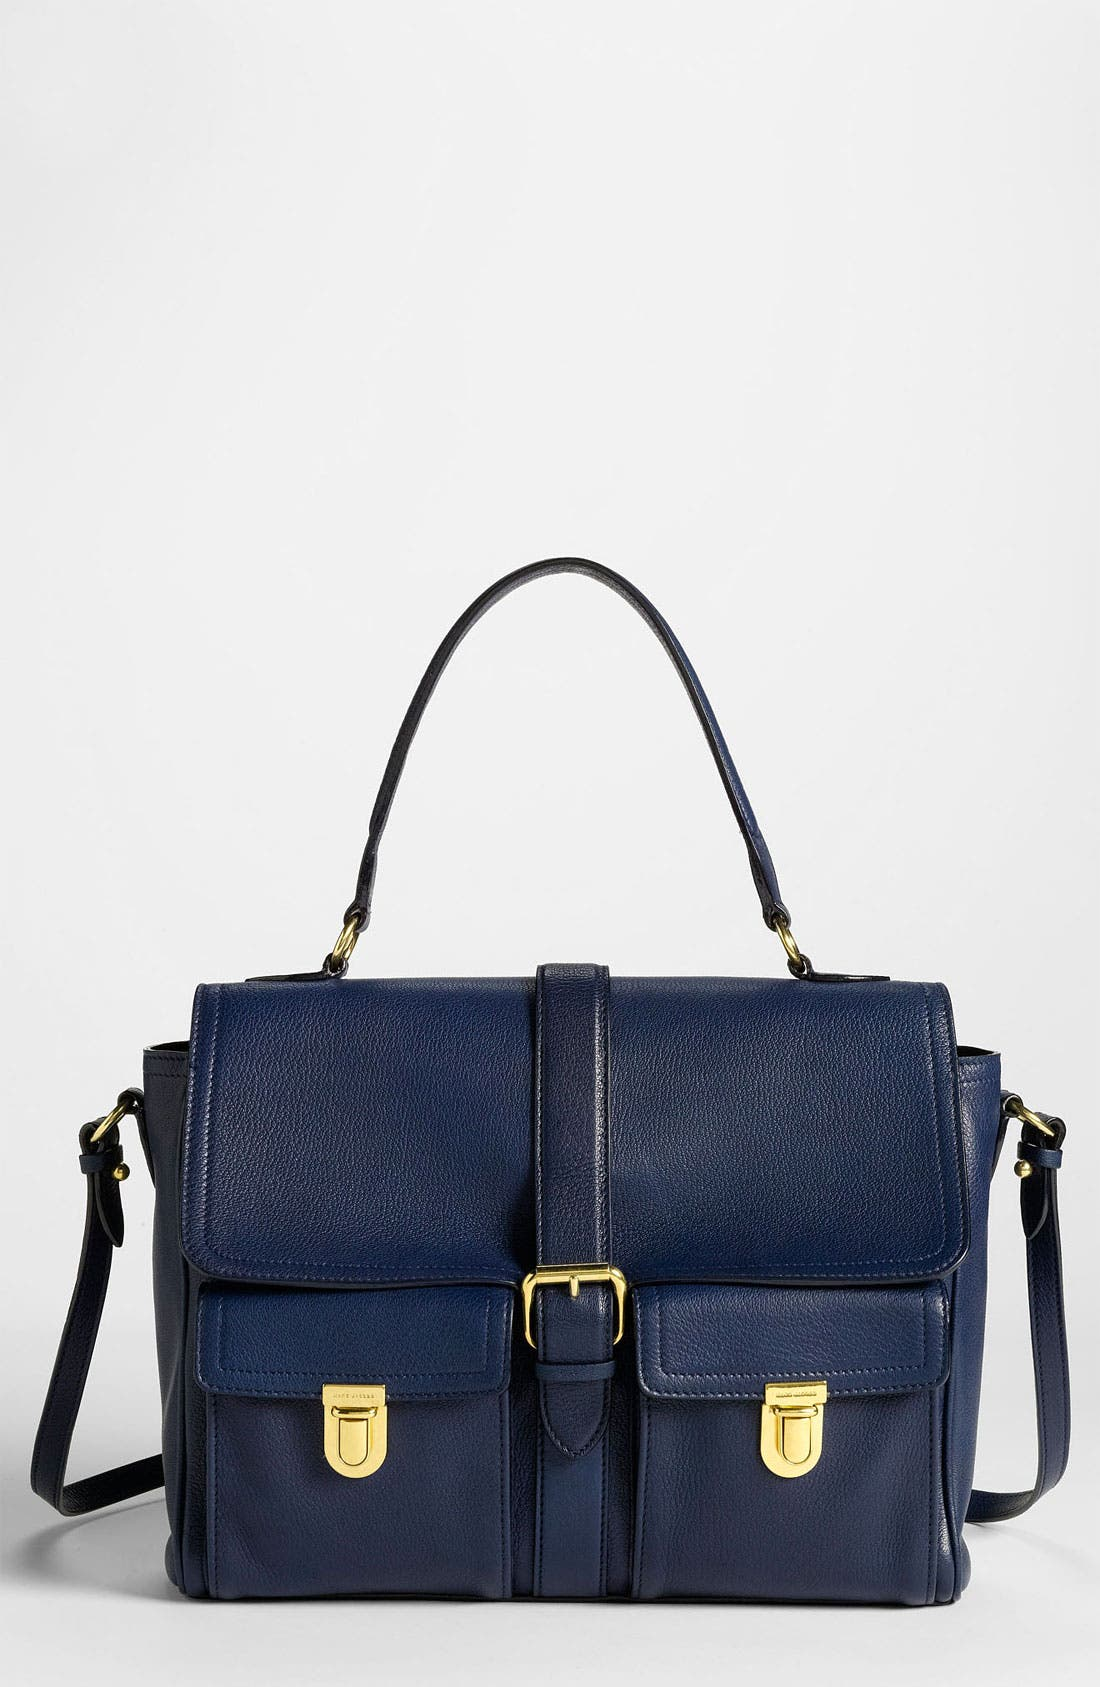 Main Image - MARC JACOBS 'Lola' Leather Satchel